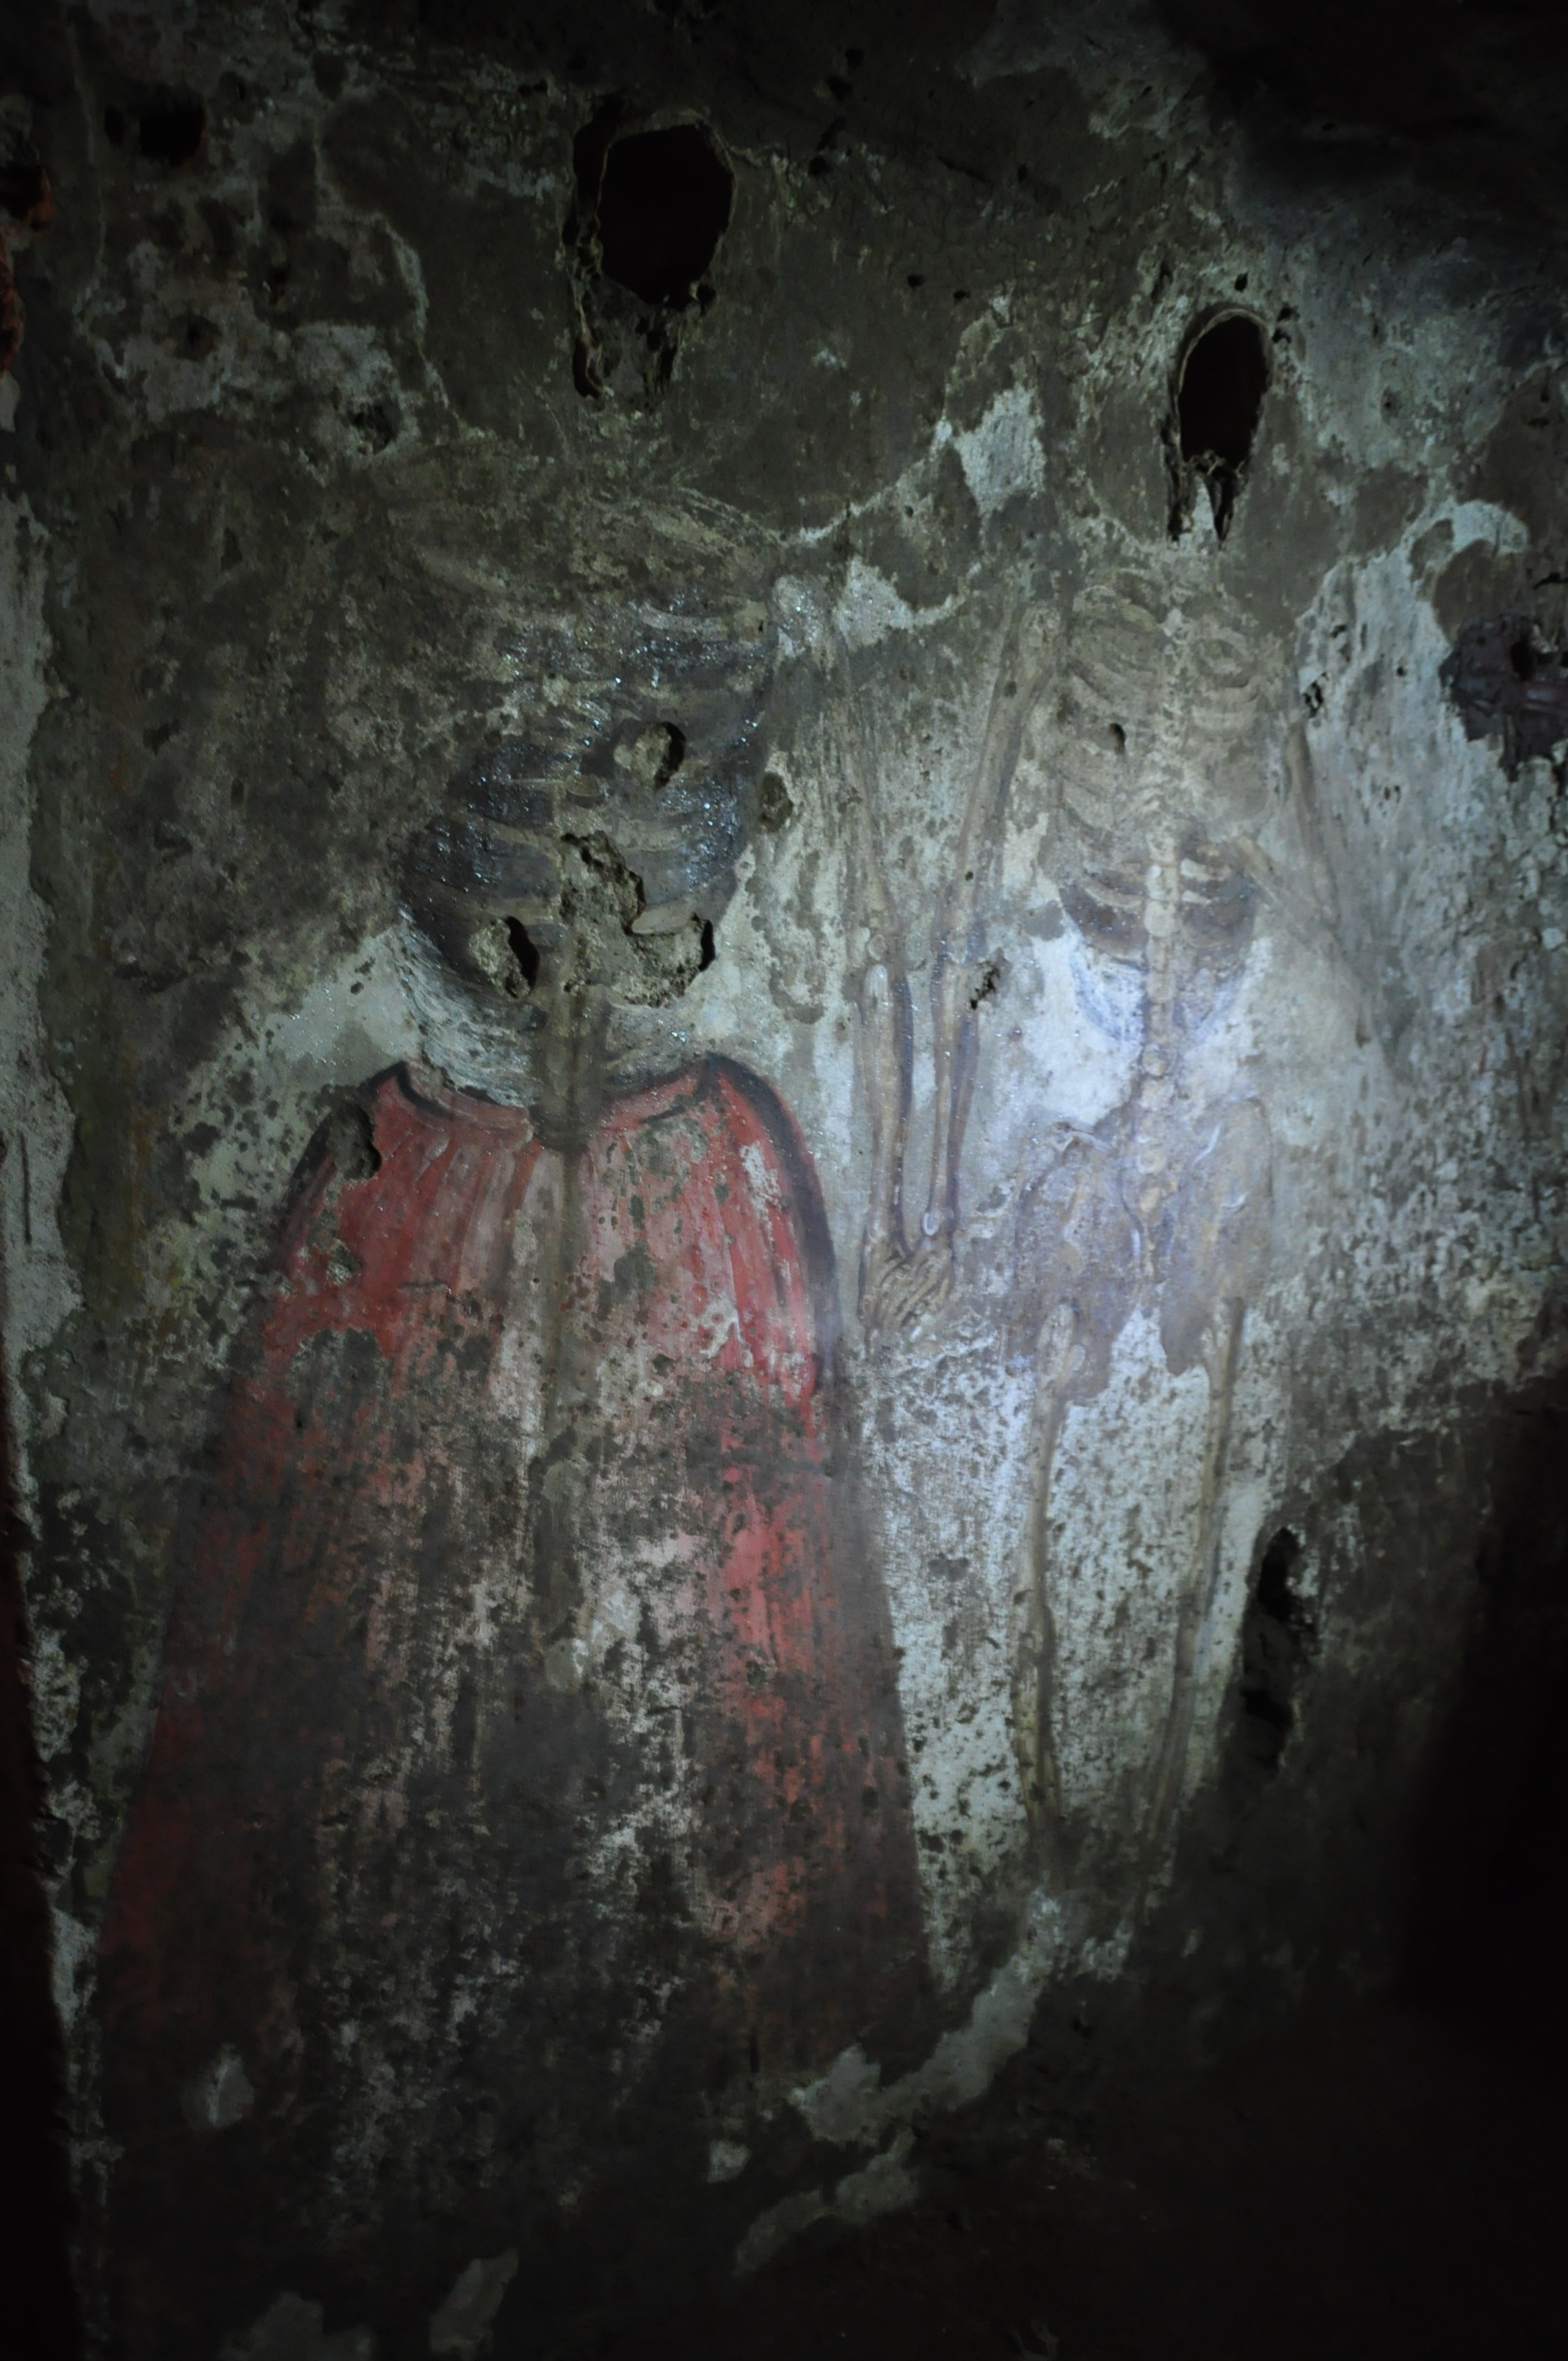 Some of the spookiest catacombs in Italy